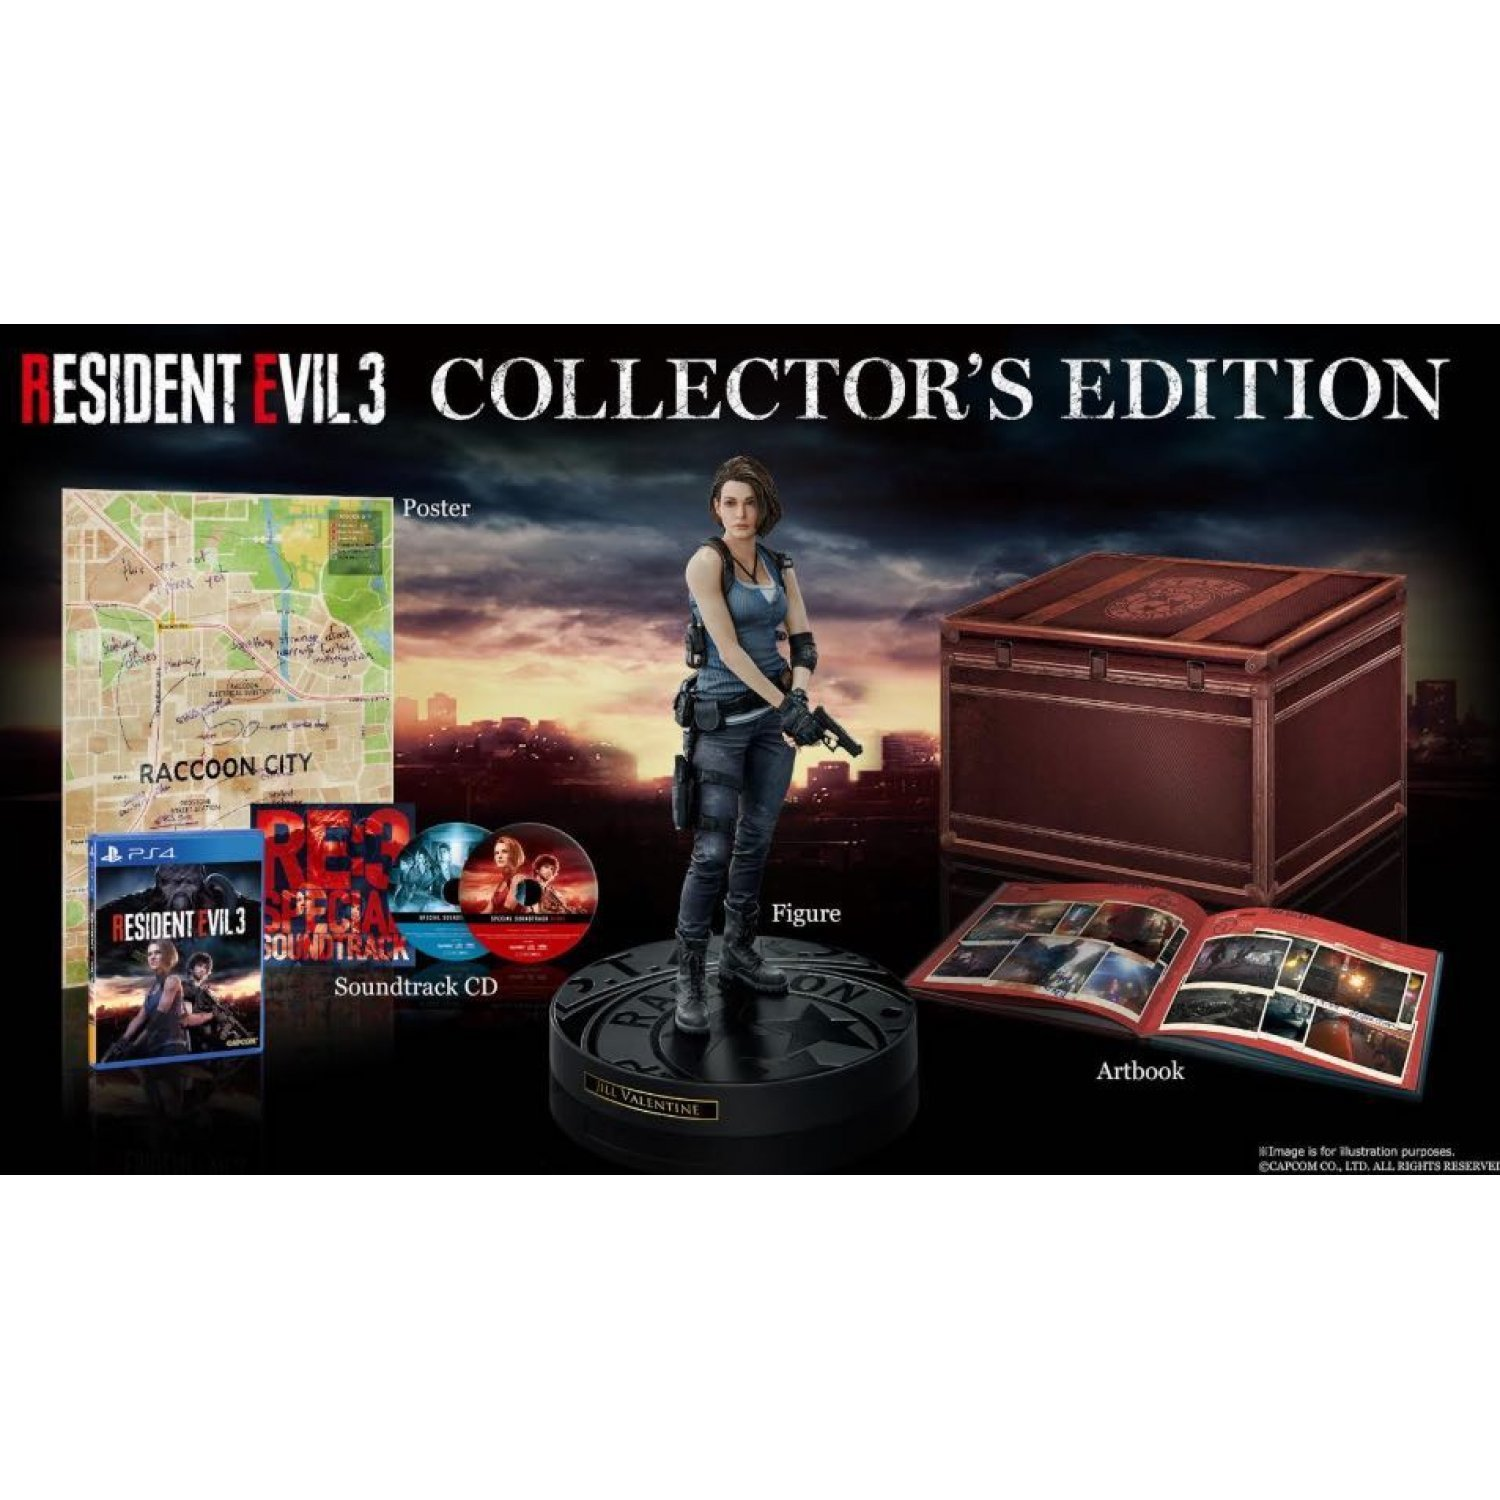 resident-evil-3-collectors-edition-multilanguage-624985.10.jpg